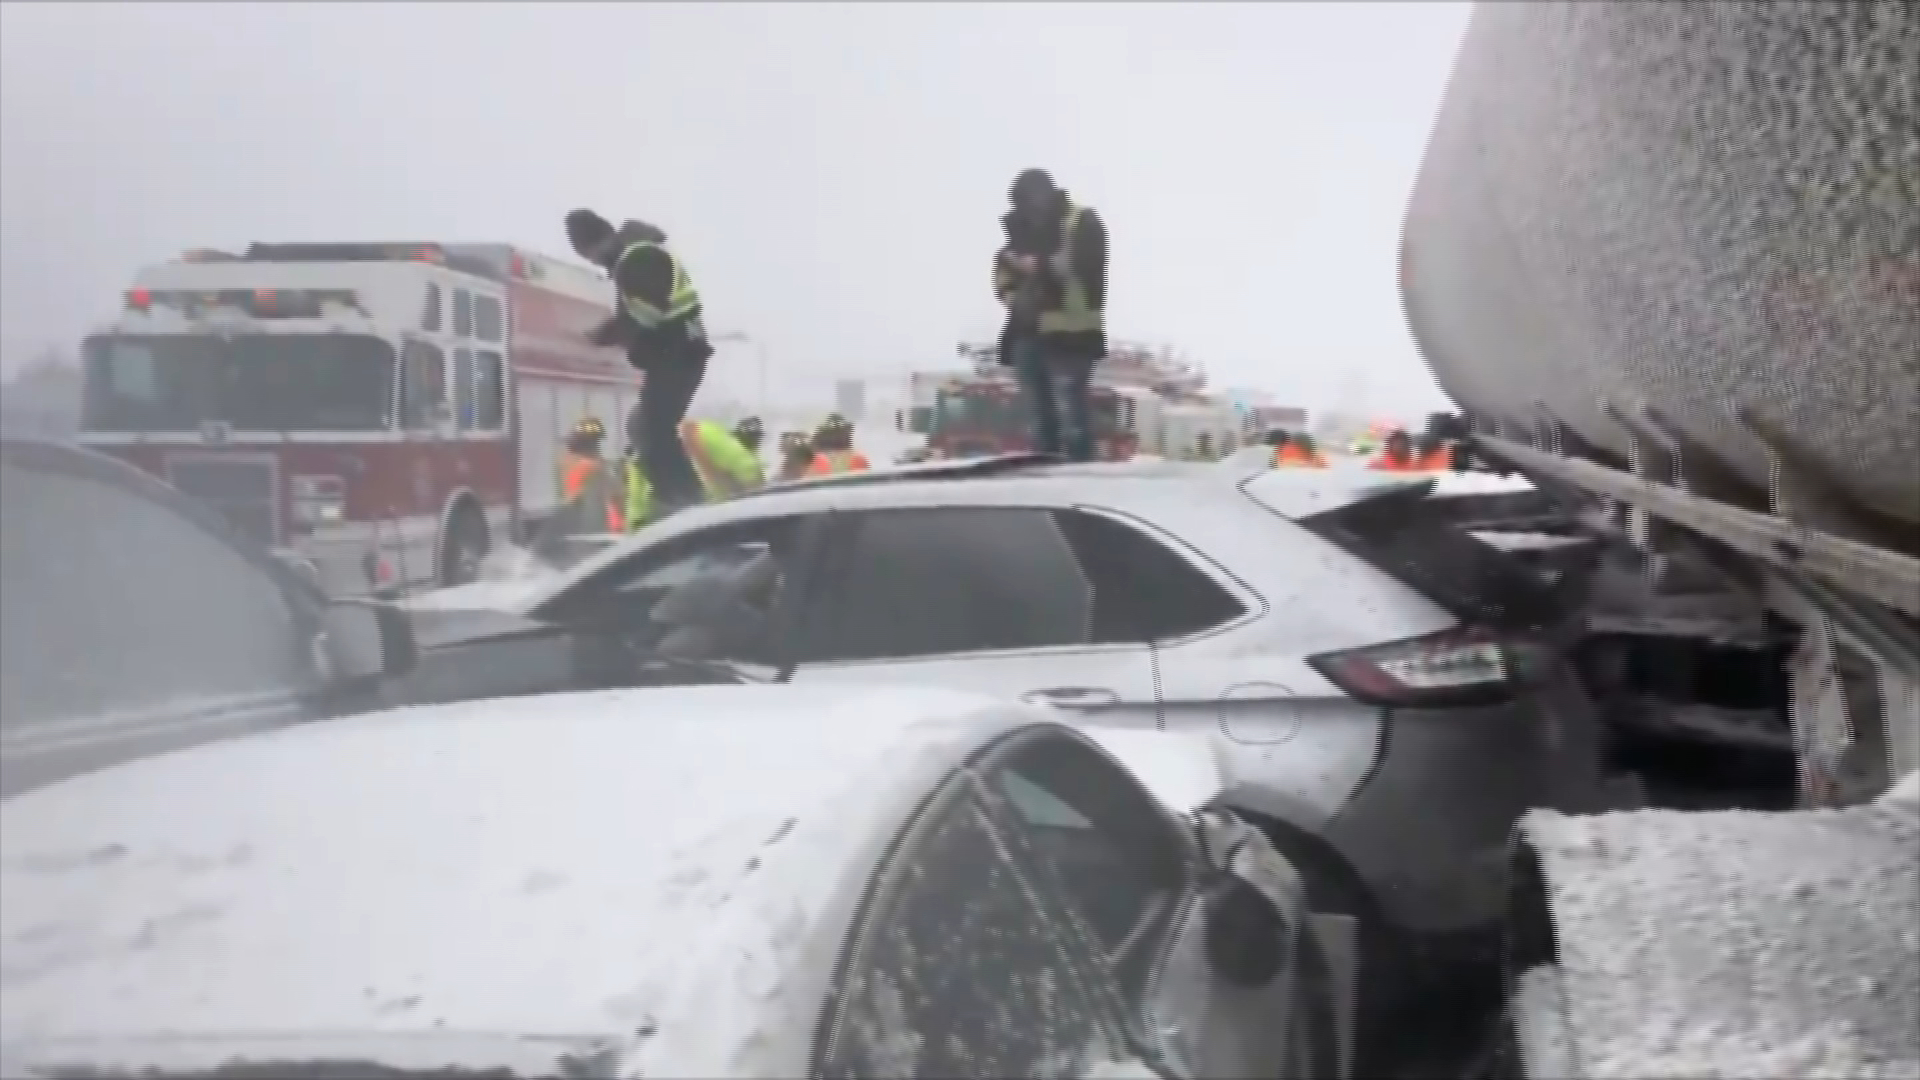 Hwy  400 reopens near Barrie after pile-up involving over 70 vehicles